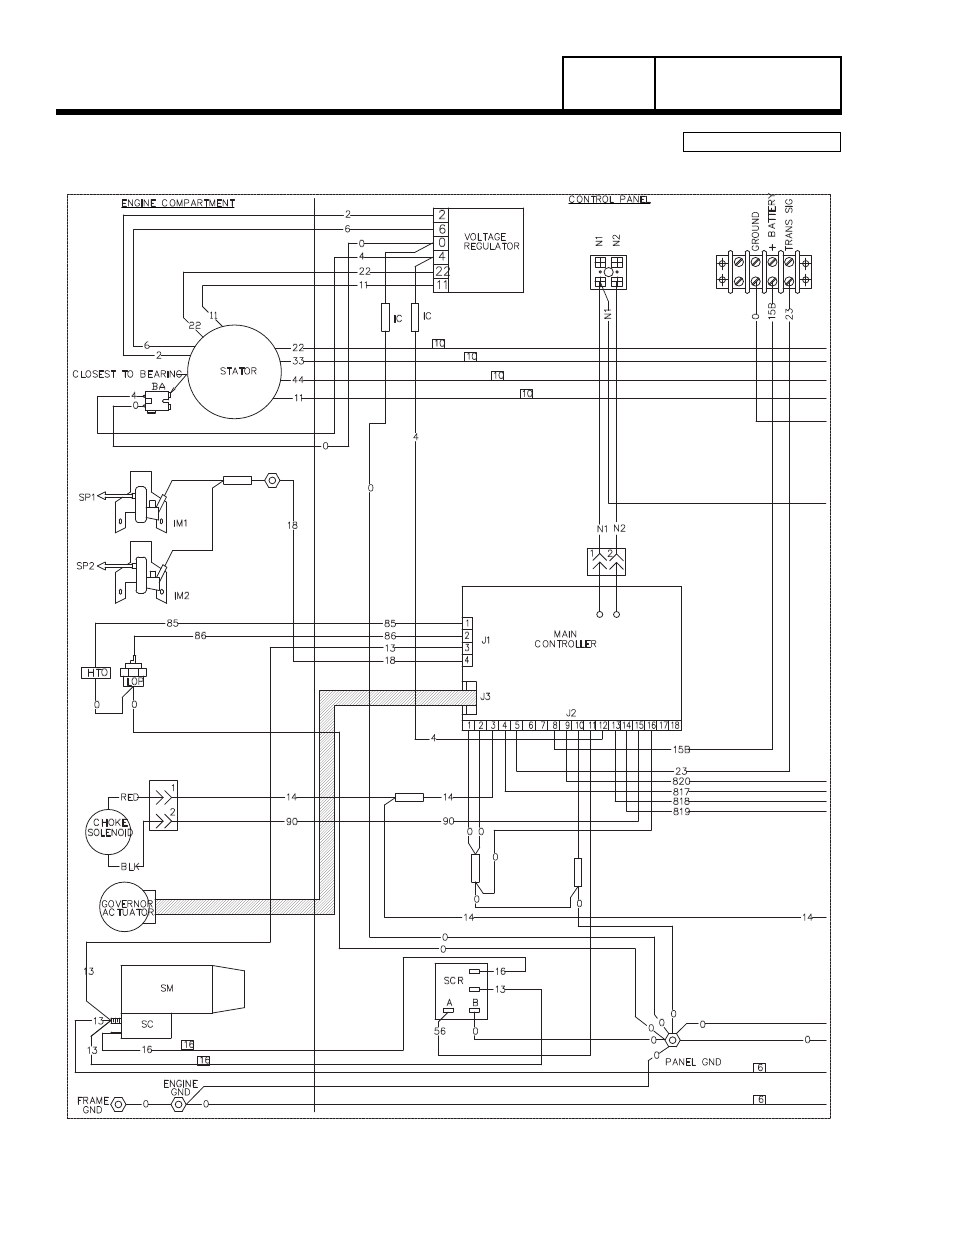 8 Kw Generac Wiring Diagram Trusted Schematics Diagrams Sprinkler System Parts Home Well 17 Standby Group G Part 7 Power Rh Manualsdir Com Manuals 20kw Schematic